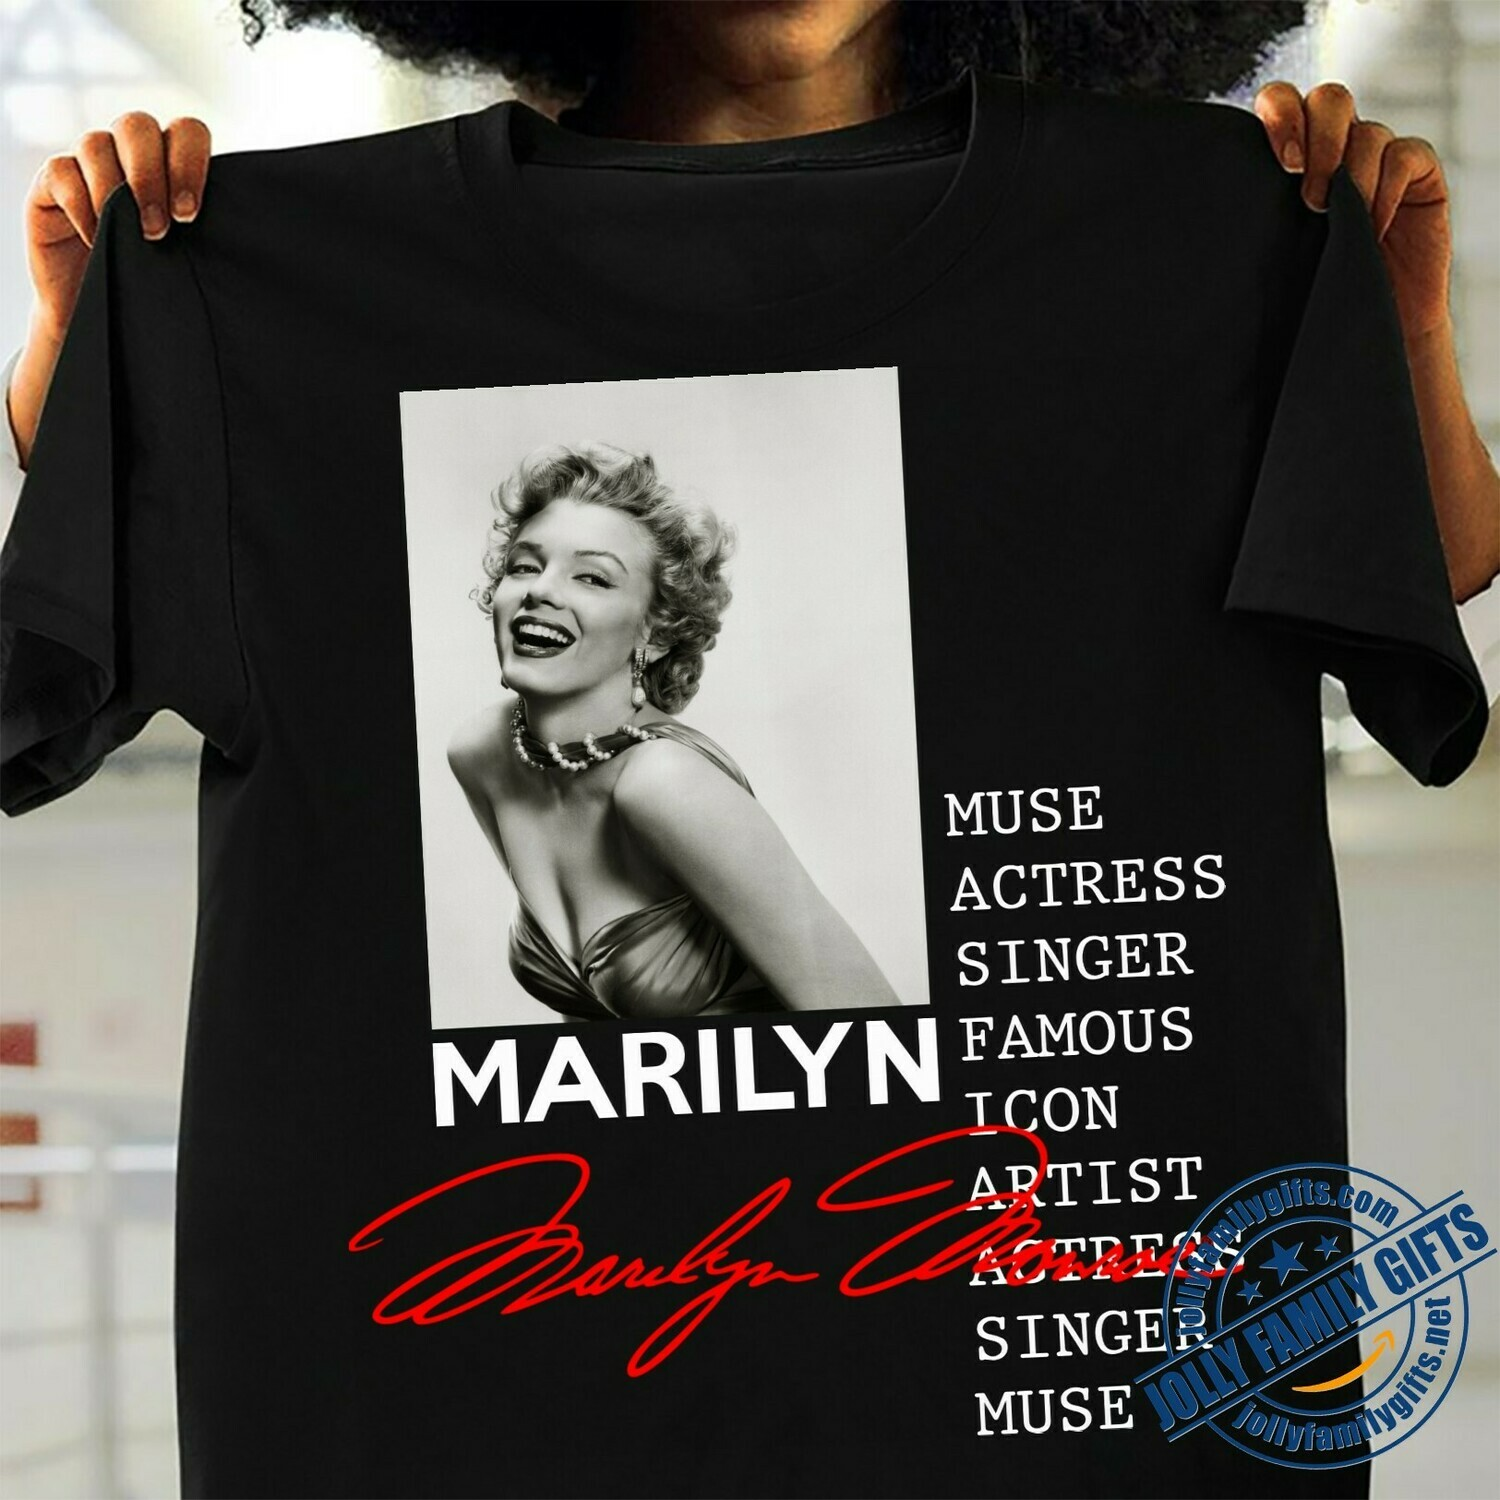 Marilyn Monroe Hollywood Star Cultural icon Actress Model Sex Symbol Norma Jeane Lips Wink Graphic  Unisex T-Shirt Hoodie Sweatshirt Sweater Plus Size for Ladies Women Men Kids Youth Gifts Tee Jolly